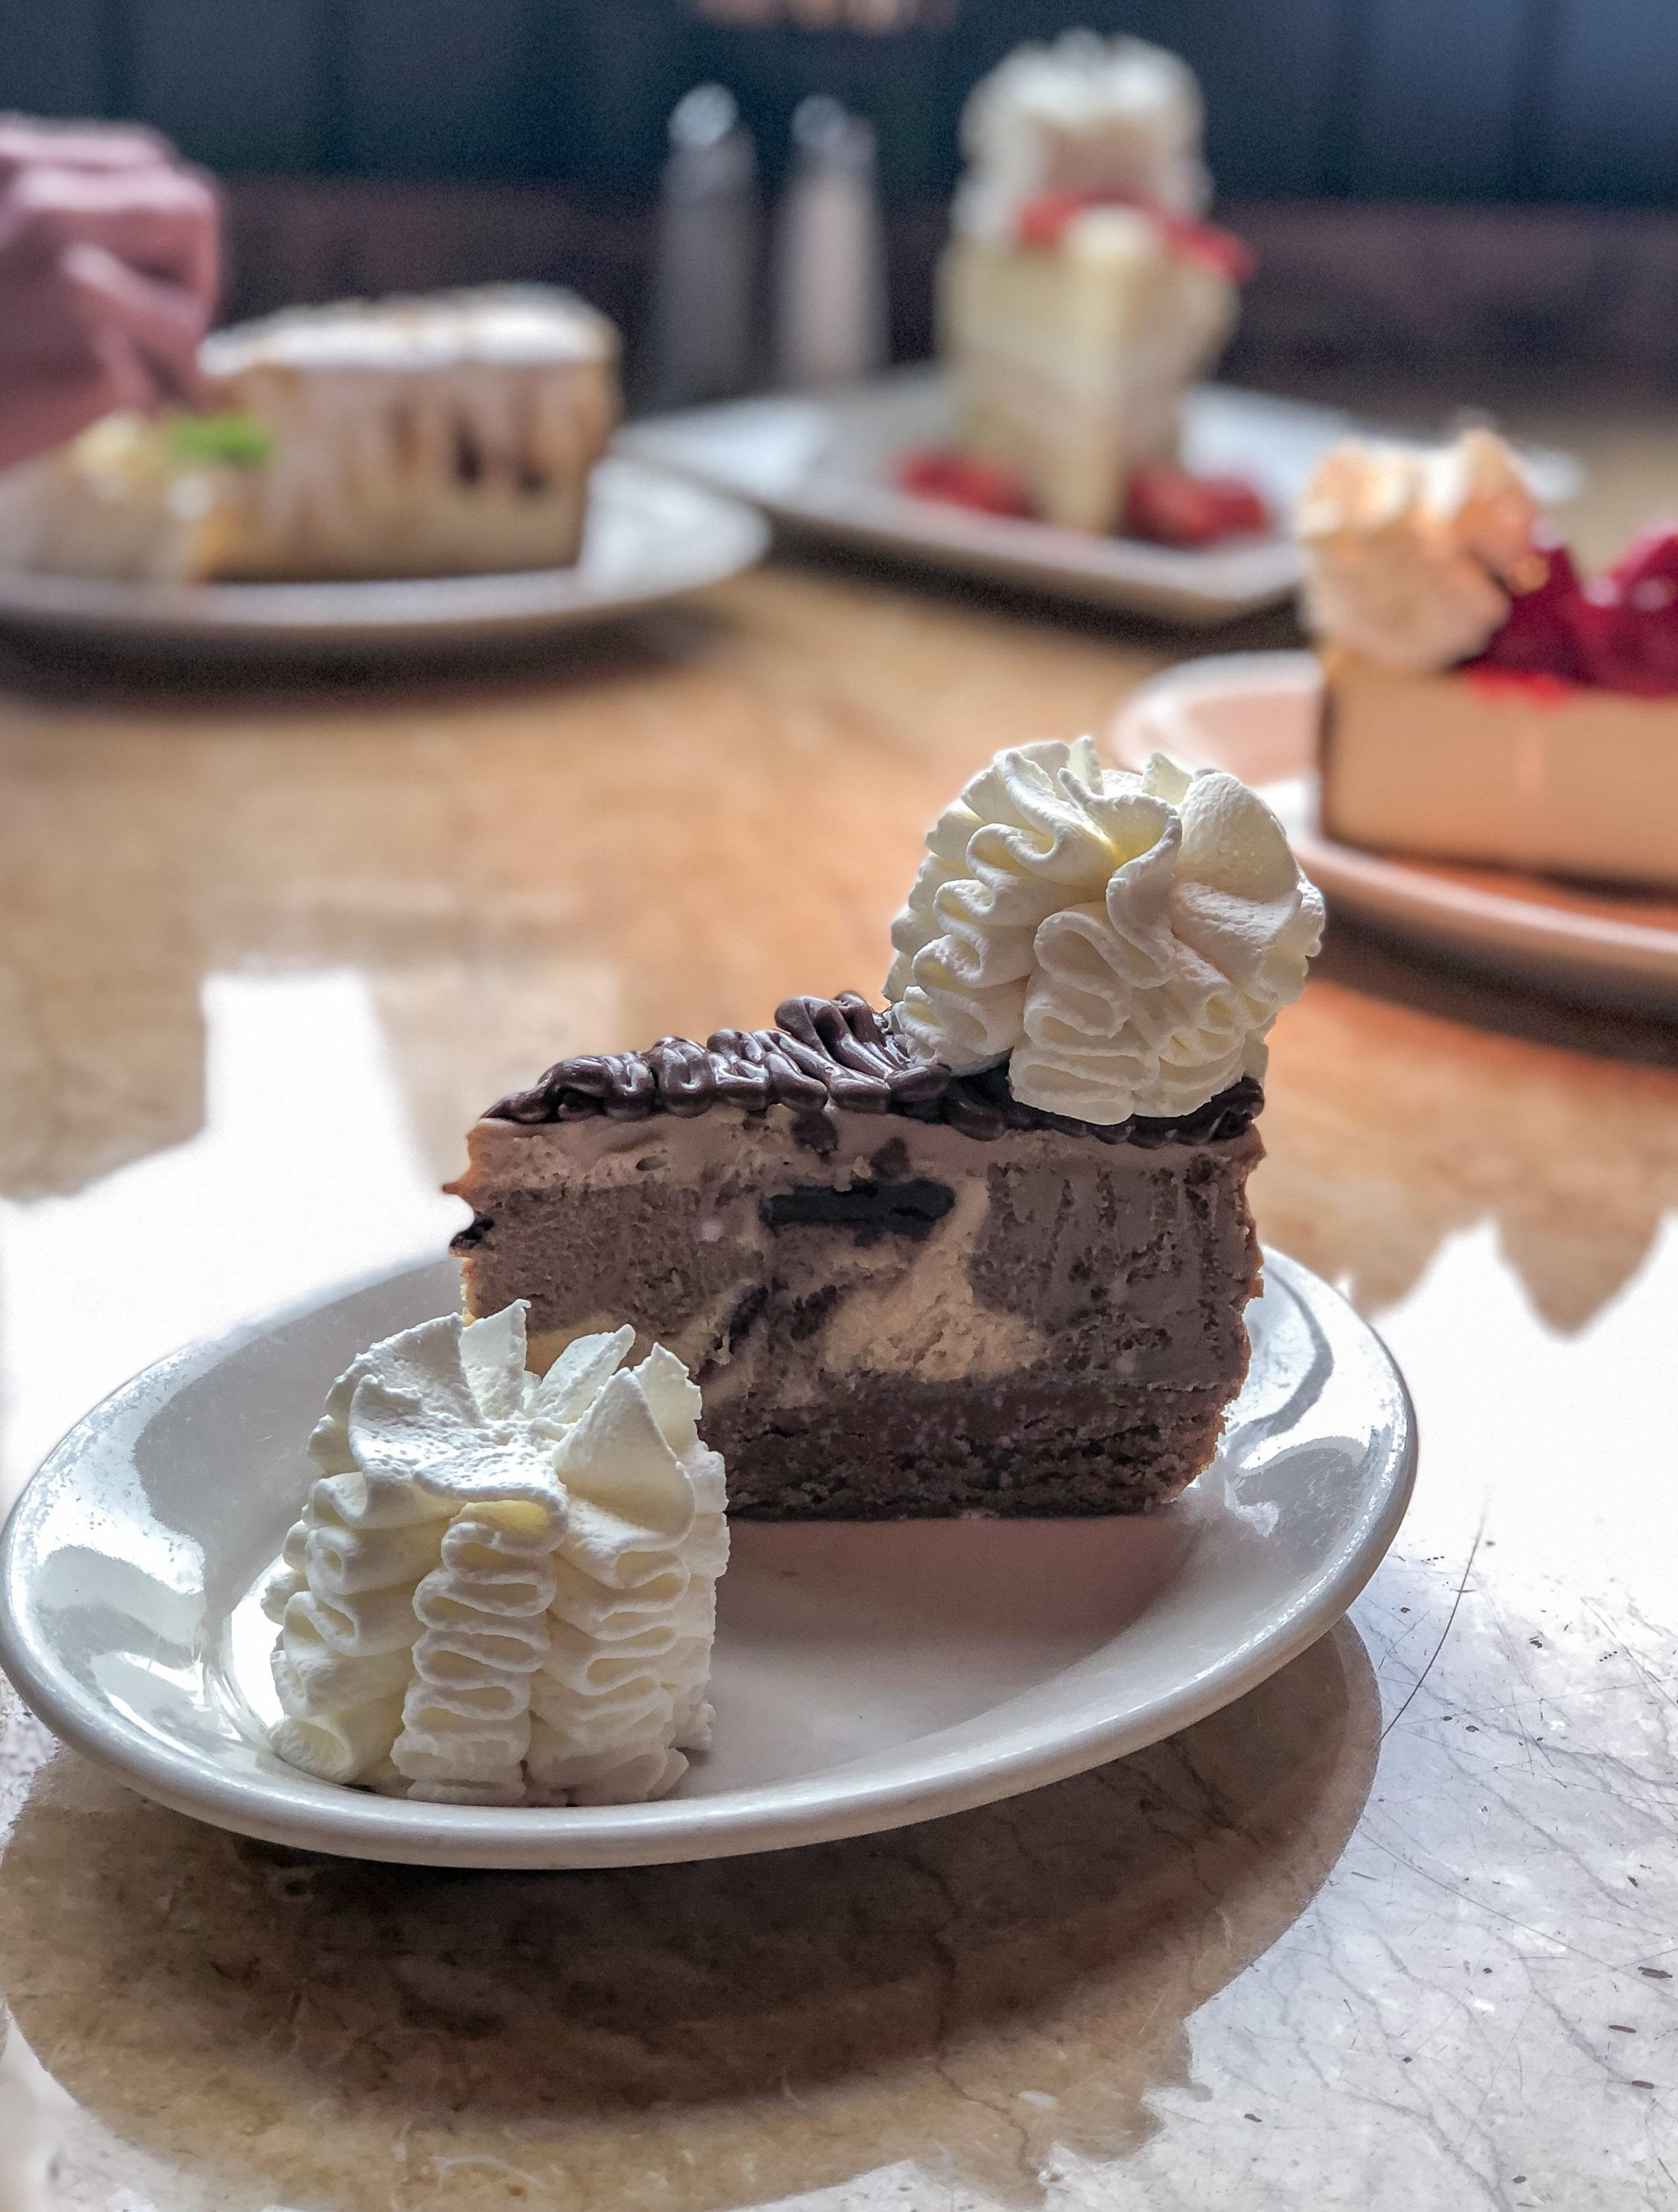 A slice of Chocolate Hazelnut Crunch Cheesecake with whipped cream on top.